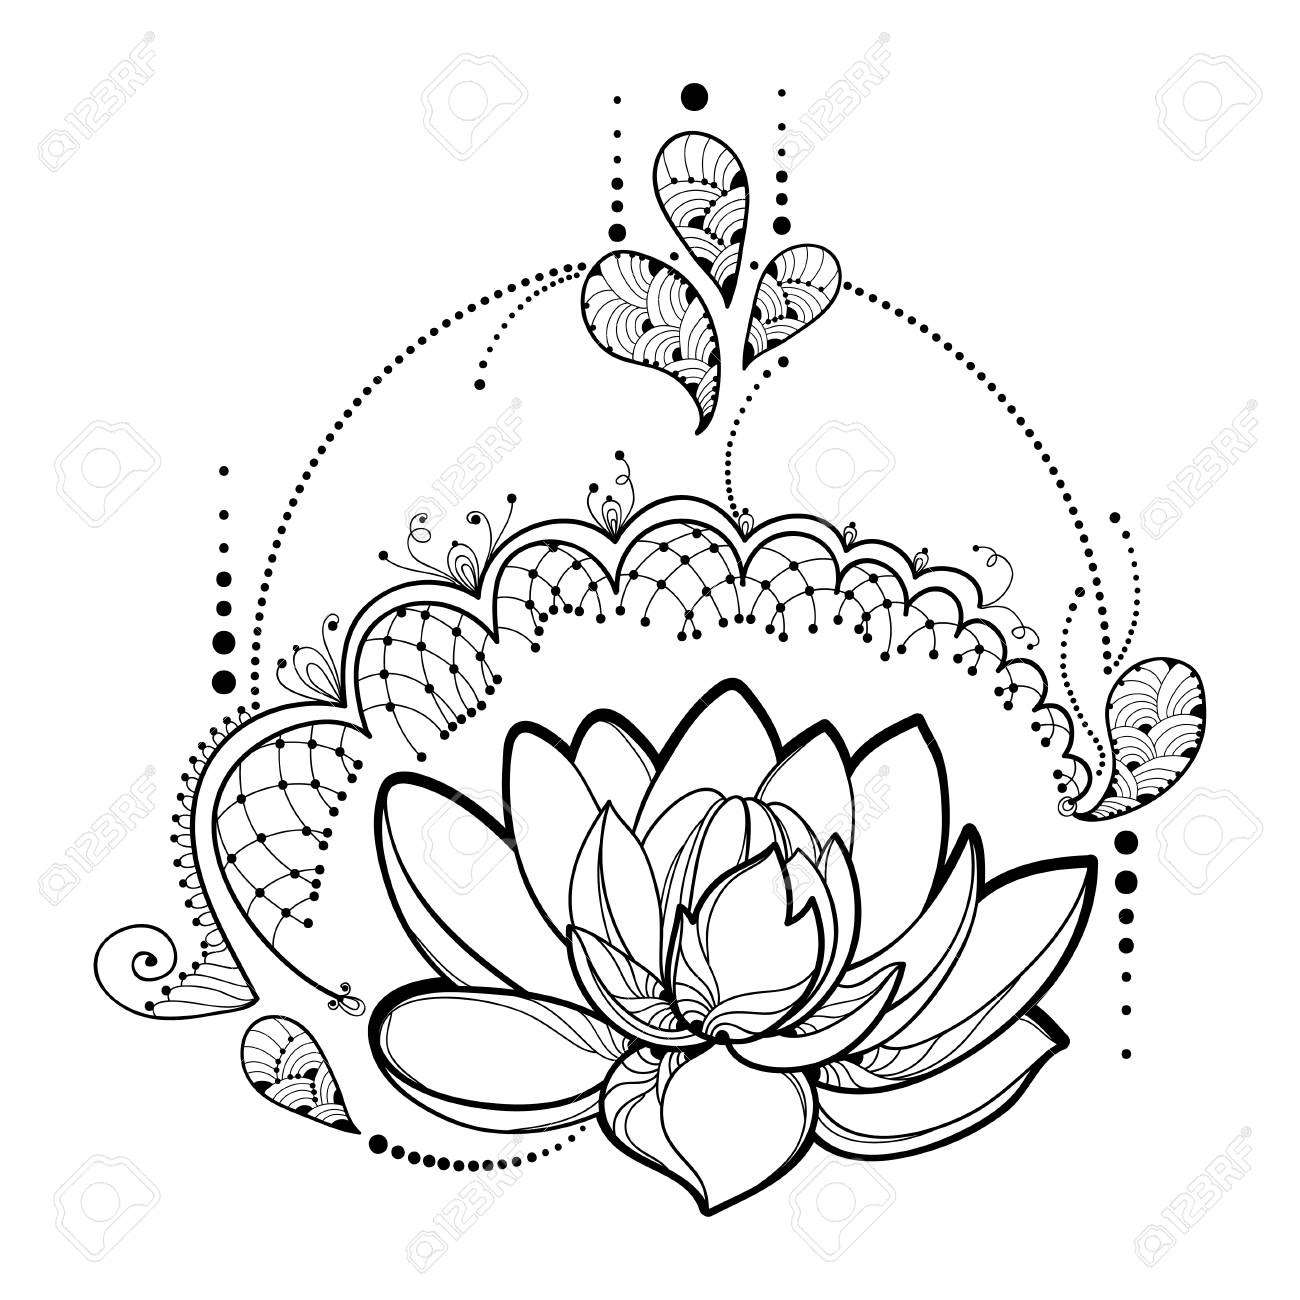 1300x1300 Drawing With Outline Lotus Flower, Decorative Lace And Swirls